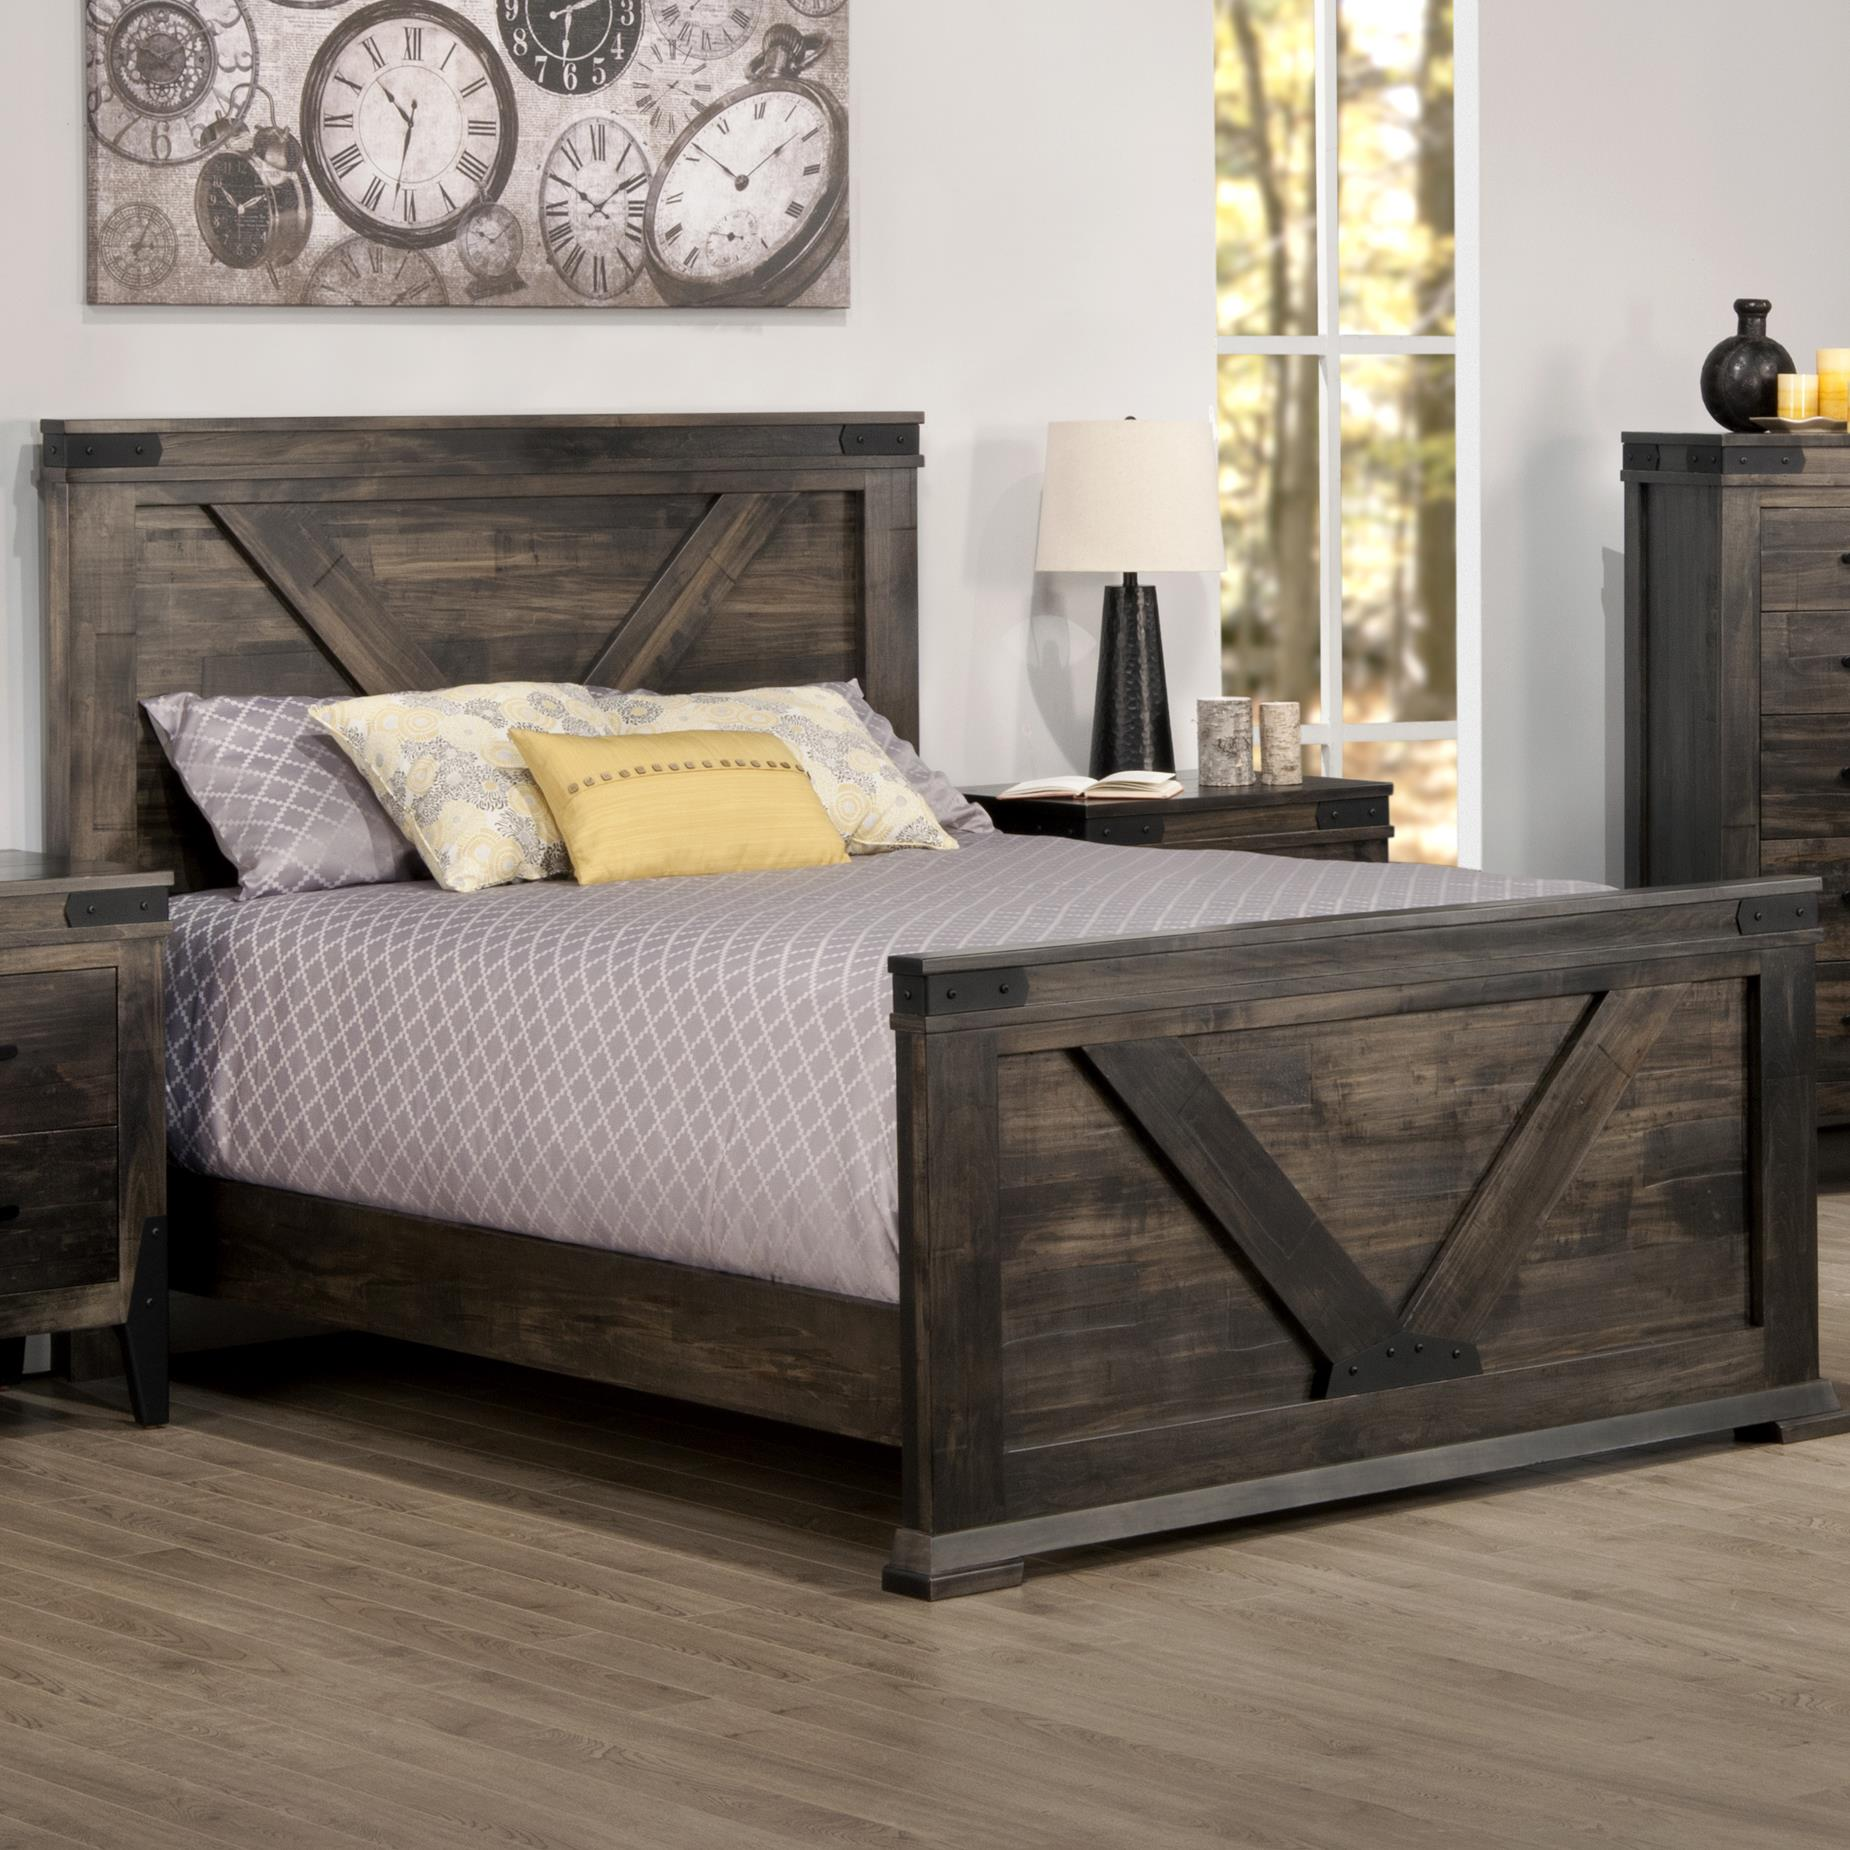 Chattanooga Queen Bed by Handstone at Stoney Creek Furniture